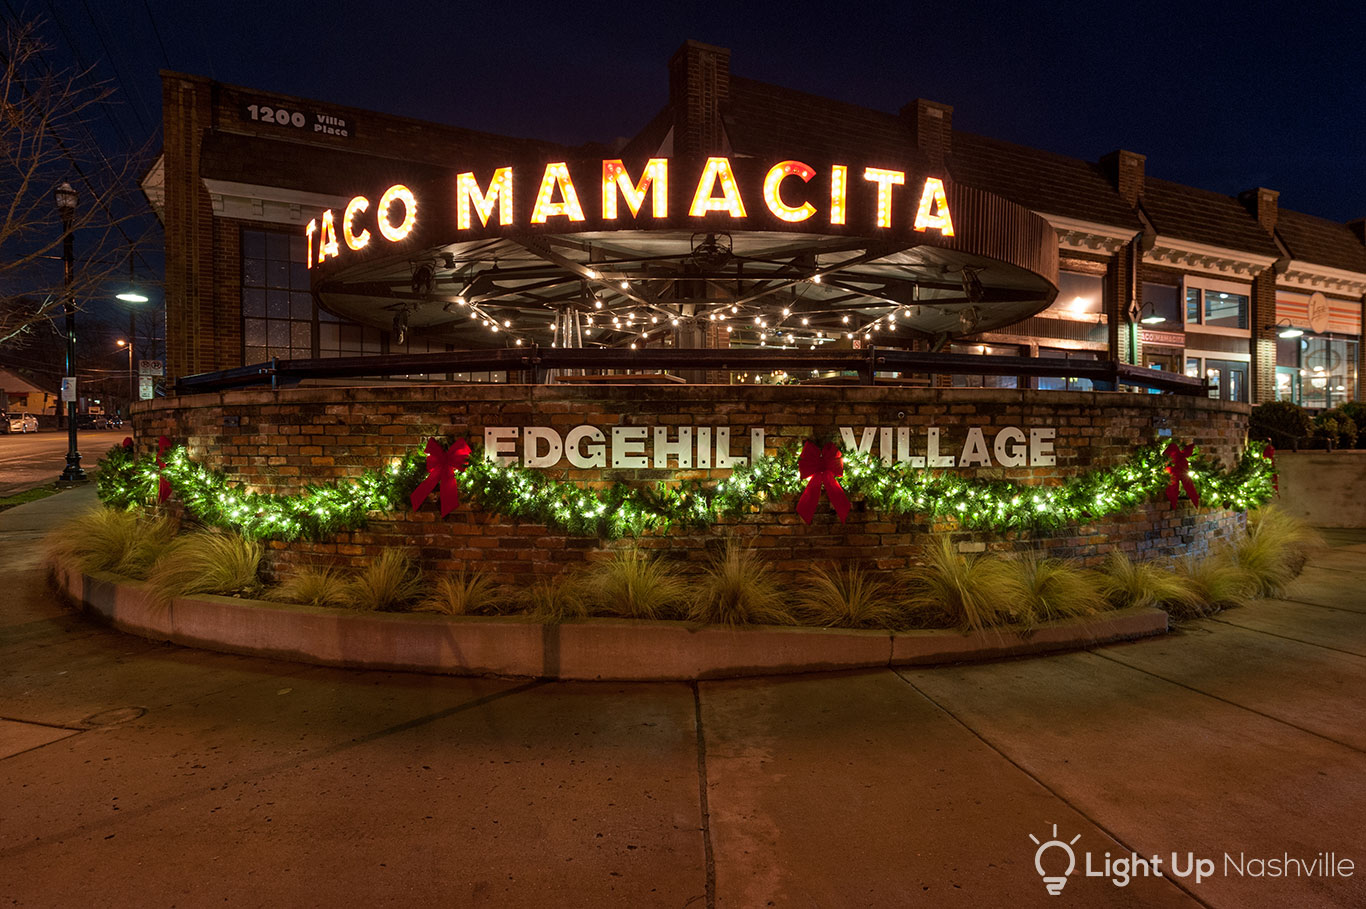 taco-mamacita-edgehill-village-holiday-2016